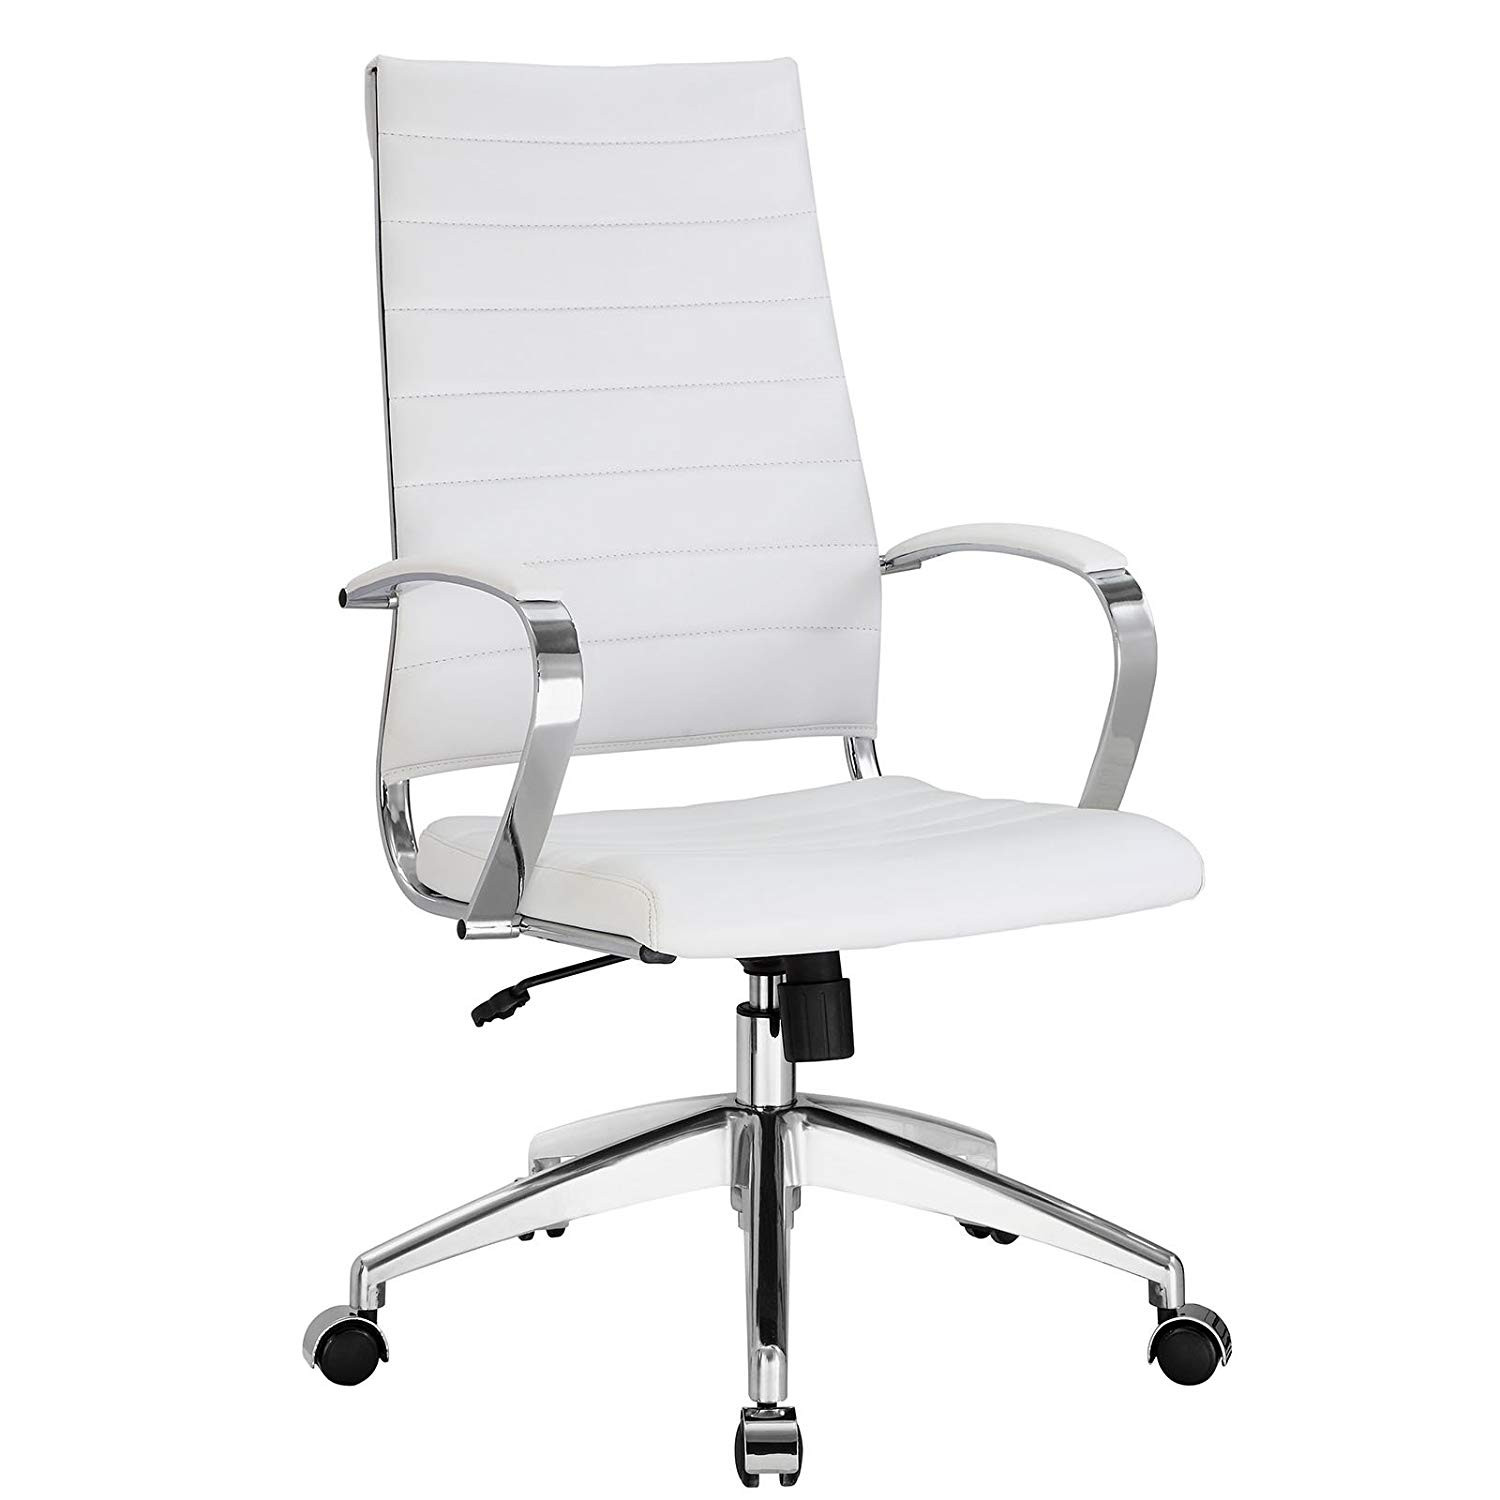 Best ideas about White Desk Chair . Save or Pin 10 Best White Desk Chair Options for Your fice Now.